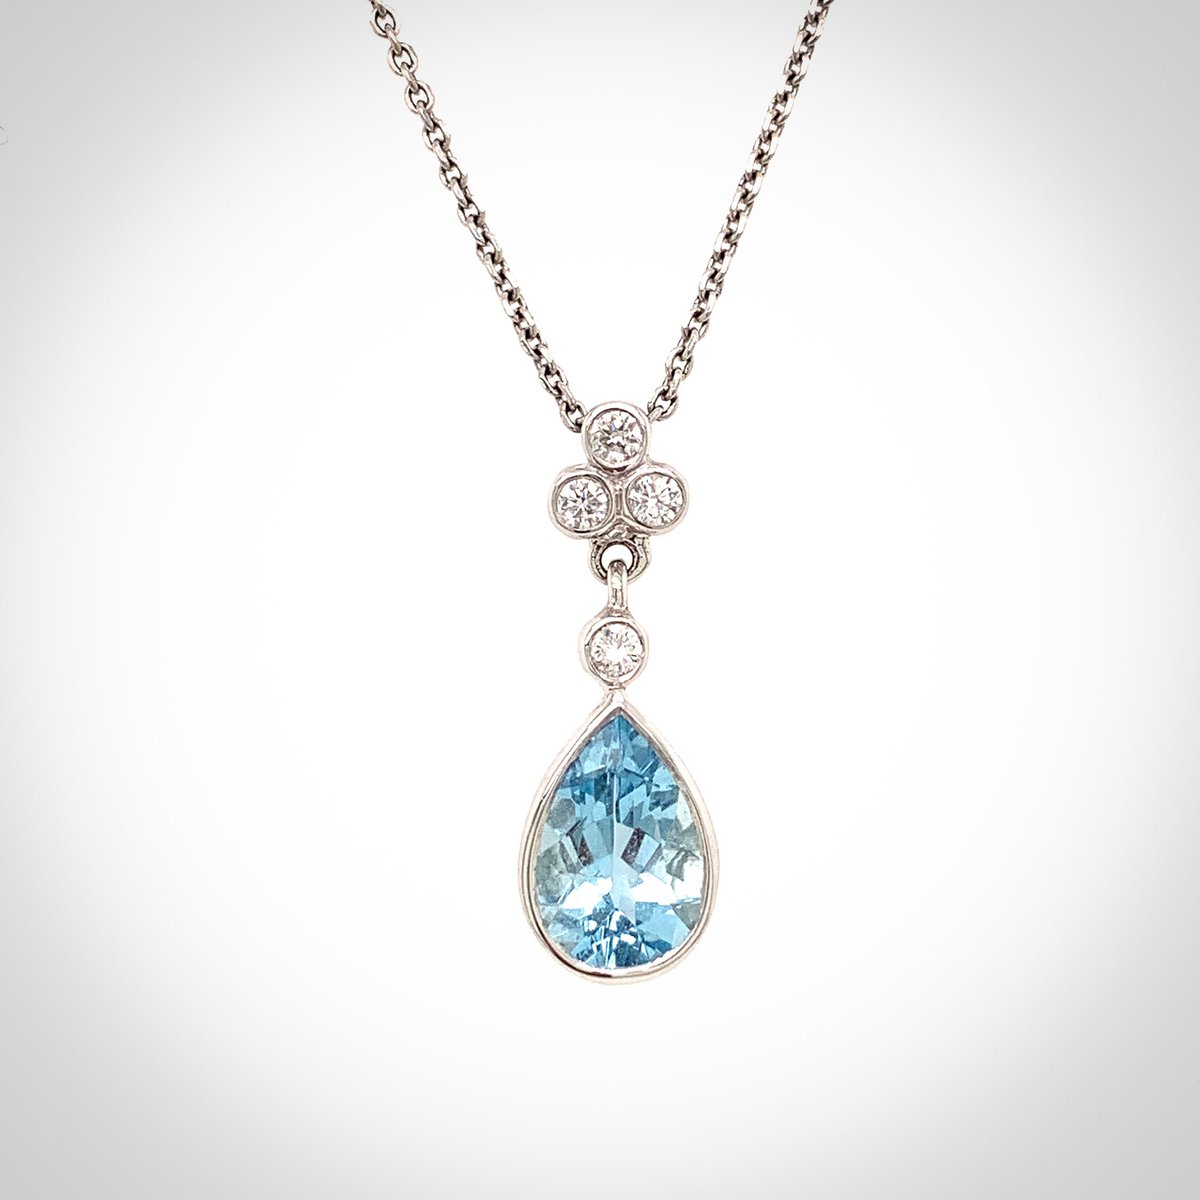 #Aquamarine #teardrop shaped #pendant, bezel set in #18ct #whitegold with #diamonds. #guildford #surrey #independentjeweller #shoplocal #finejewellery #jewellery #jeweller #diamond #diamondjewellery #roundbrilliant #jewels #diamondpendant #aqua #aquamarinejewellery #bluegreen